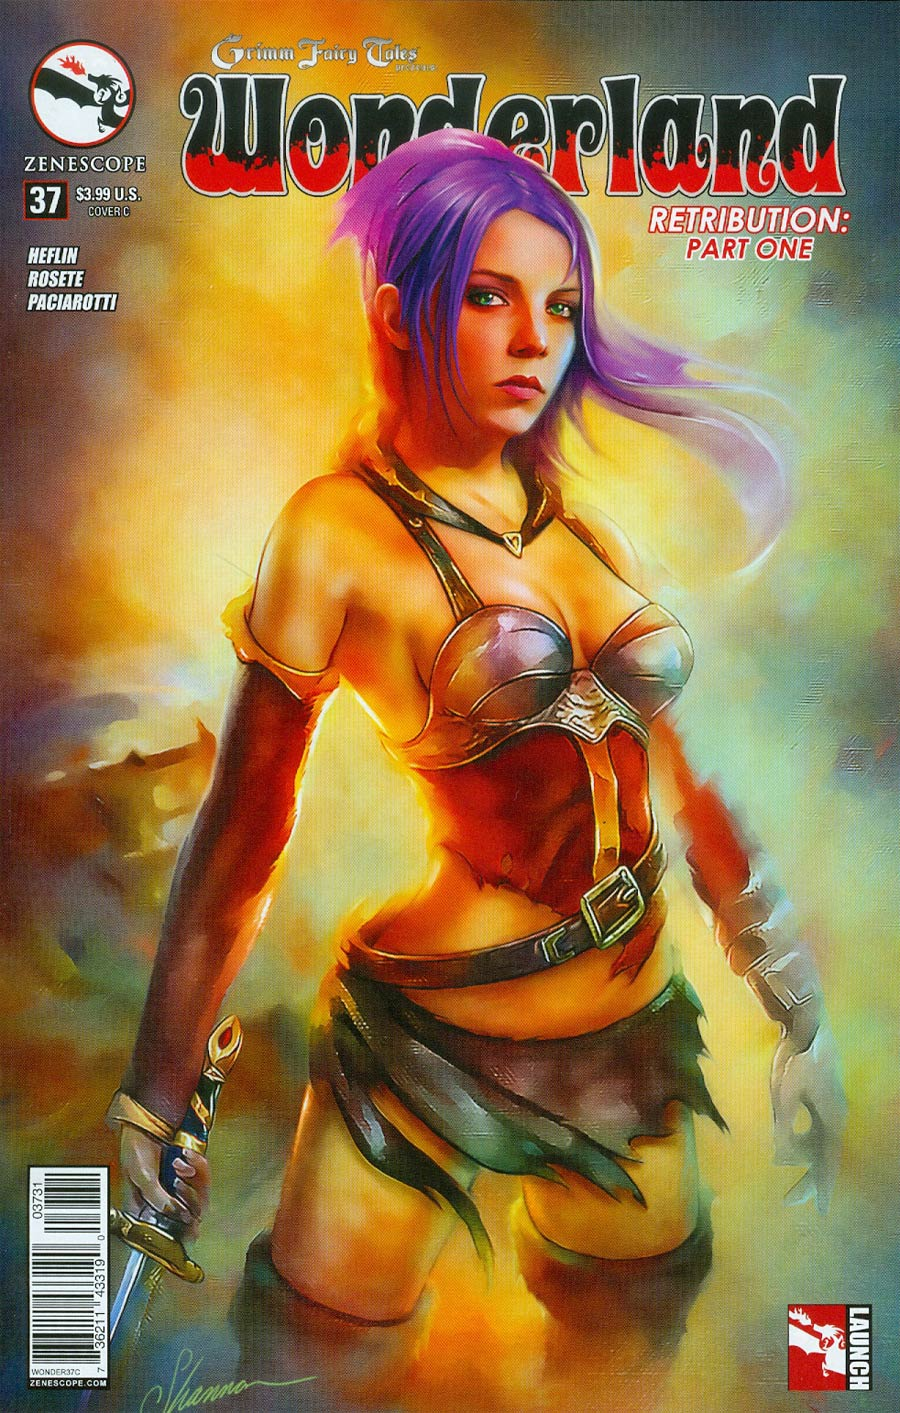 Grimm Fairy Tales Presents Wonderland Vol 2 #37 Cover C Shannon Maer